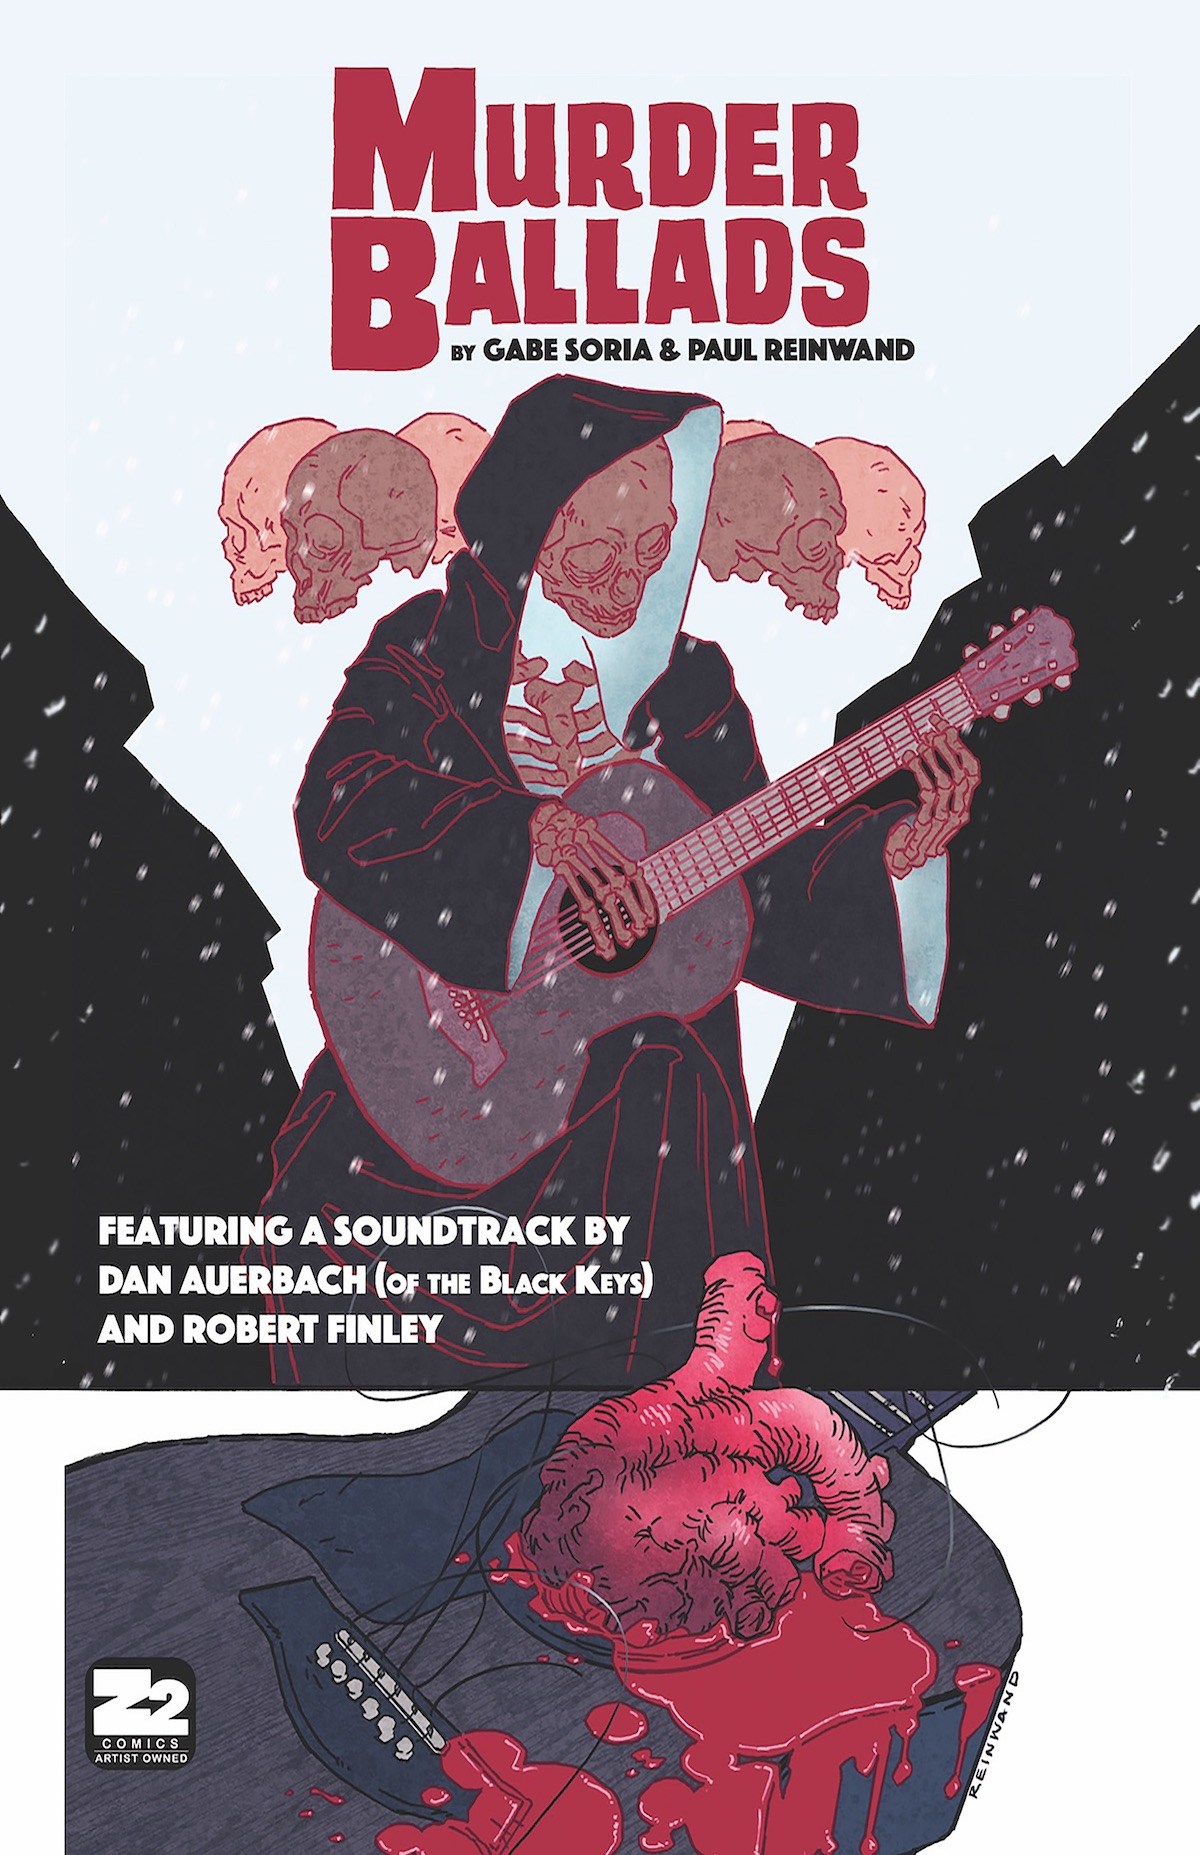 """Murder Ballads: By Gabe Soria, Paul Reinwand, Chris Hunt, Dan Auerbach and Robert Finley   Murder Ballads deftly weaves doom blues into a narrative that is a meditation on music, race, obsession, and how far someone will go to see their vision become real. One of the most critically acclaimed graphic novels of 2016, the book comes with original downloadable music by Dan Auerbach of The Black Keys and Robert Finley.   Limited Deluxe Edition with 10"""" Vinyl available from MONDO here."""